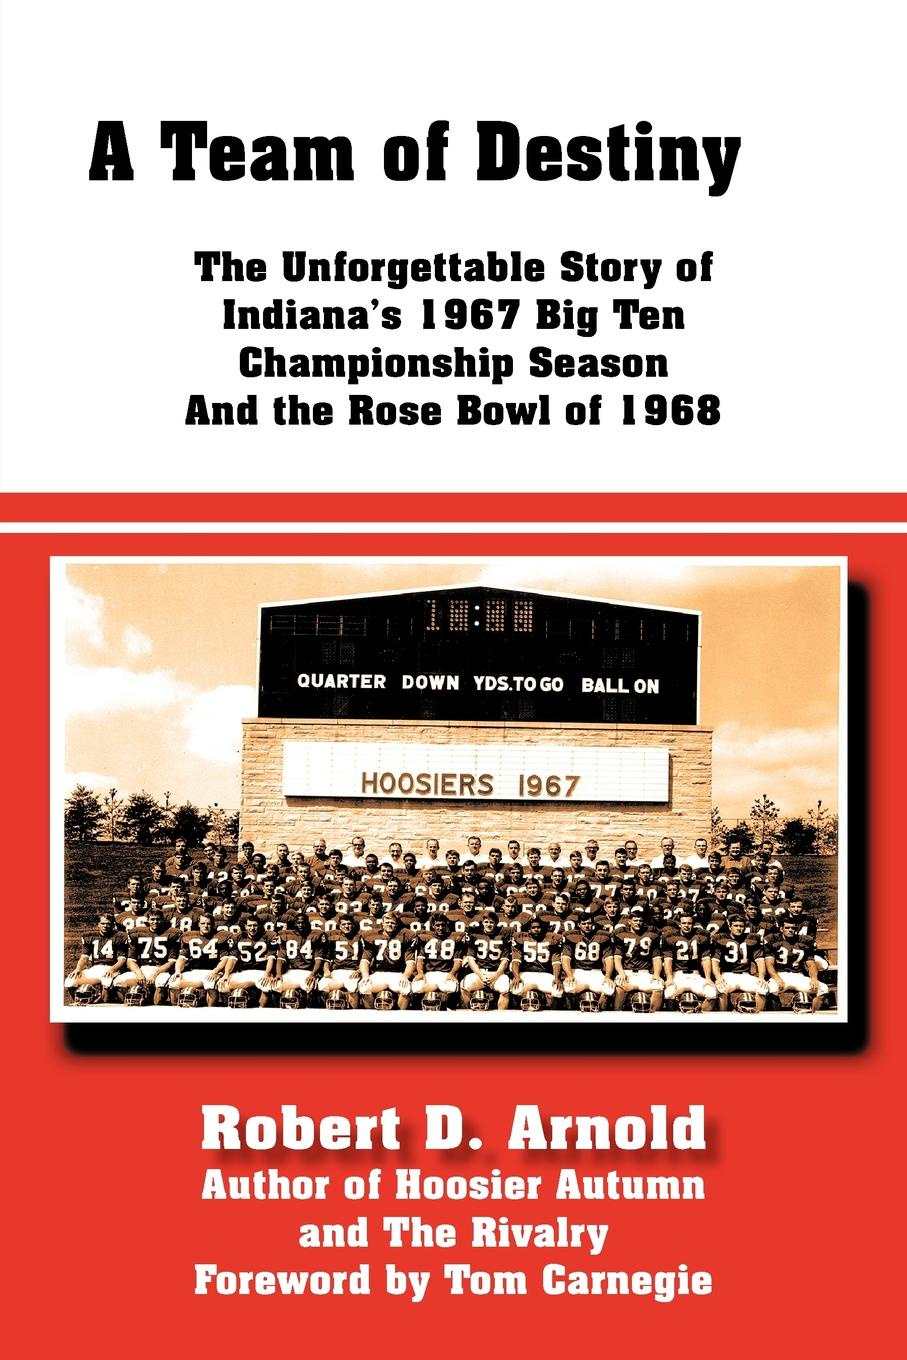 Robert D. Arnold A Team of Destiny. The Unforgettable Story of Indiana's 1967 Big Ten Championship Season And the Rose Bowl of 1968 story of big cities